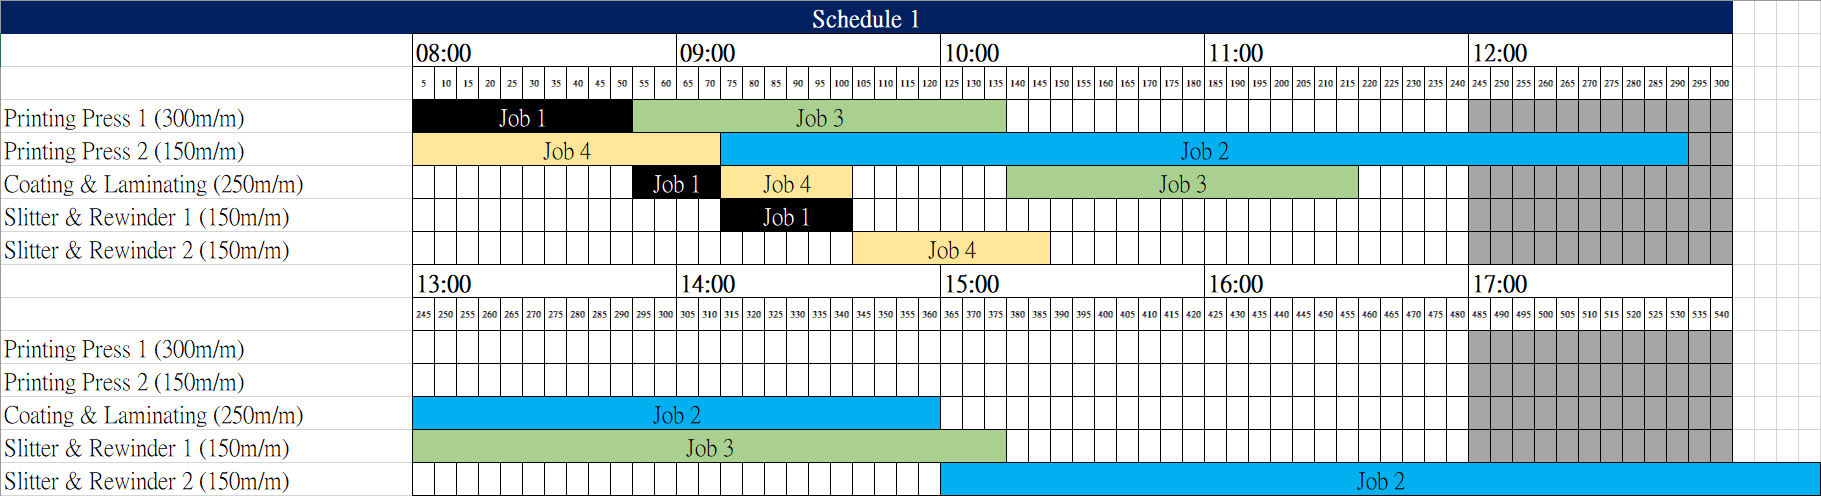 proimages/blog/production_schedule_1.jpg